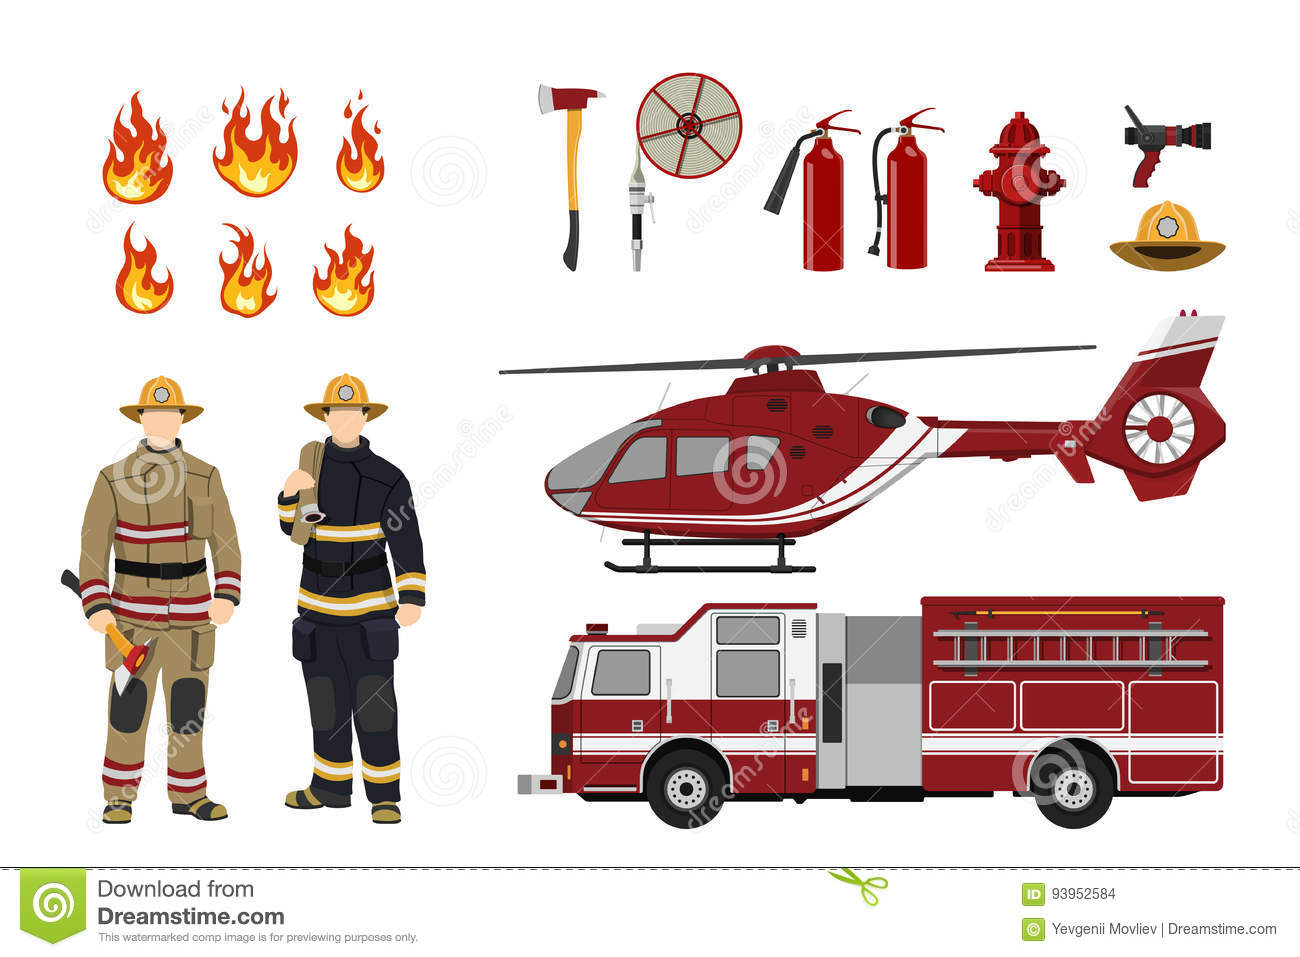 Firefighters and fire fighting equipment on a white background. Helicopter and fireman`s car. Icons of flame and items